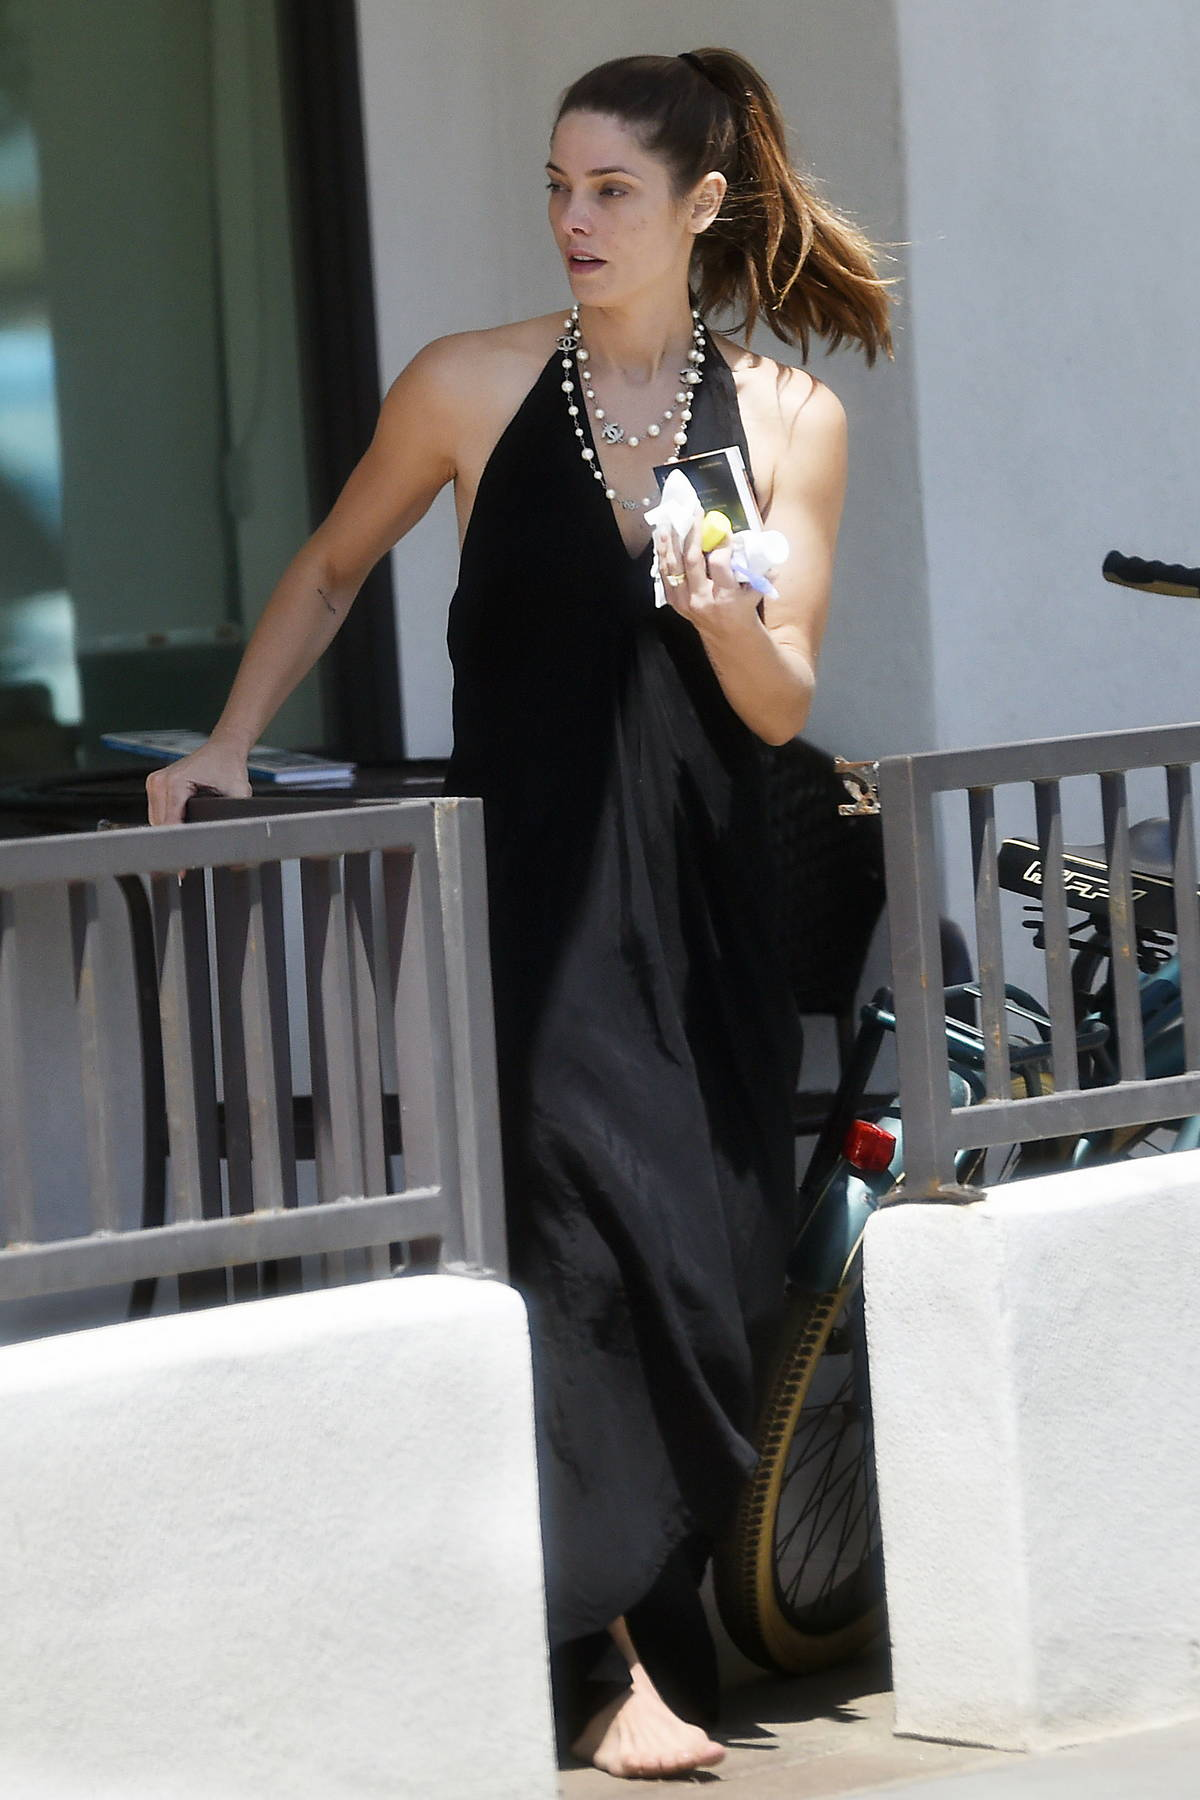 Ashley Greene wears a flowing black dress while out for stroll barefoot with husband Paul Khoury in Newport Beach, California